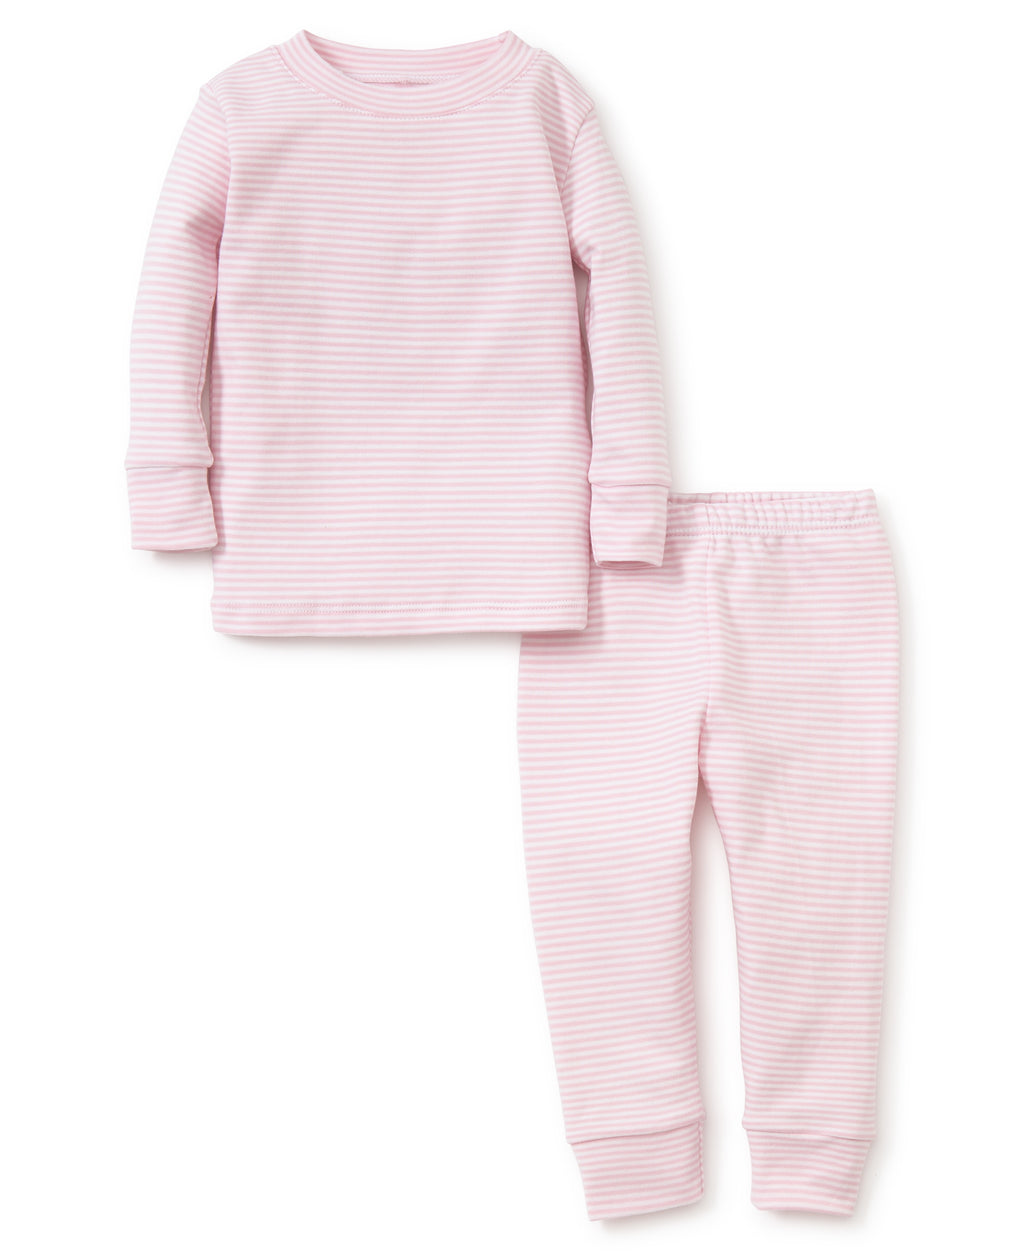 Pink Simple Stripes Toddler Pajama Set